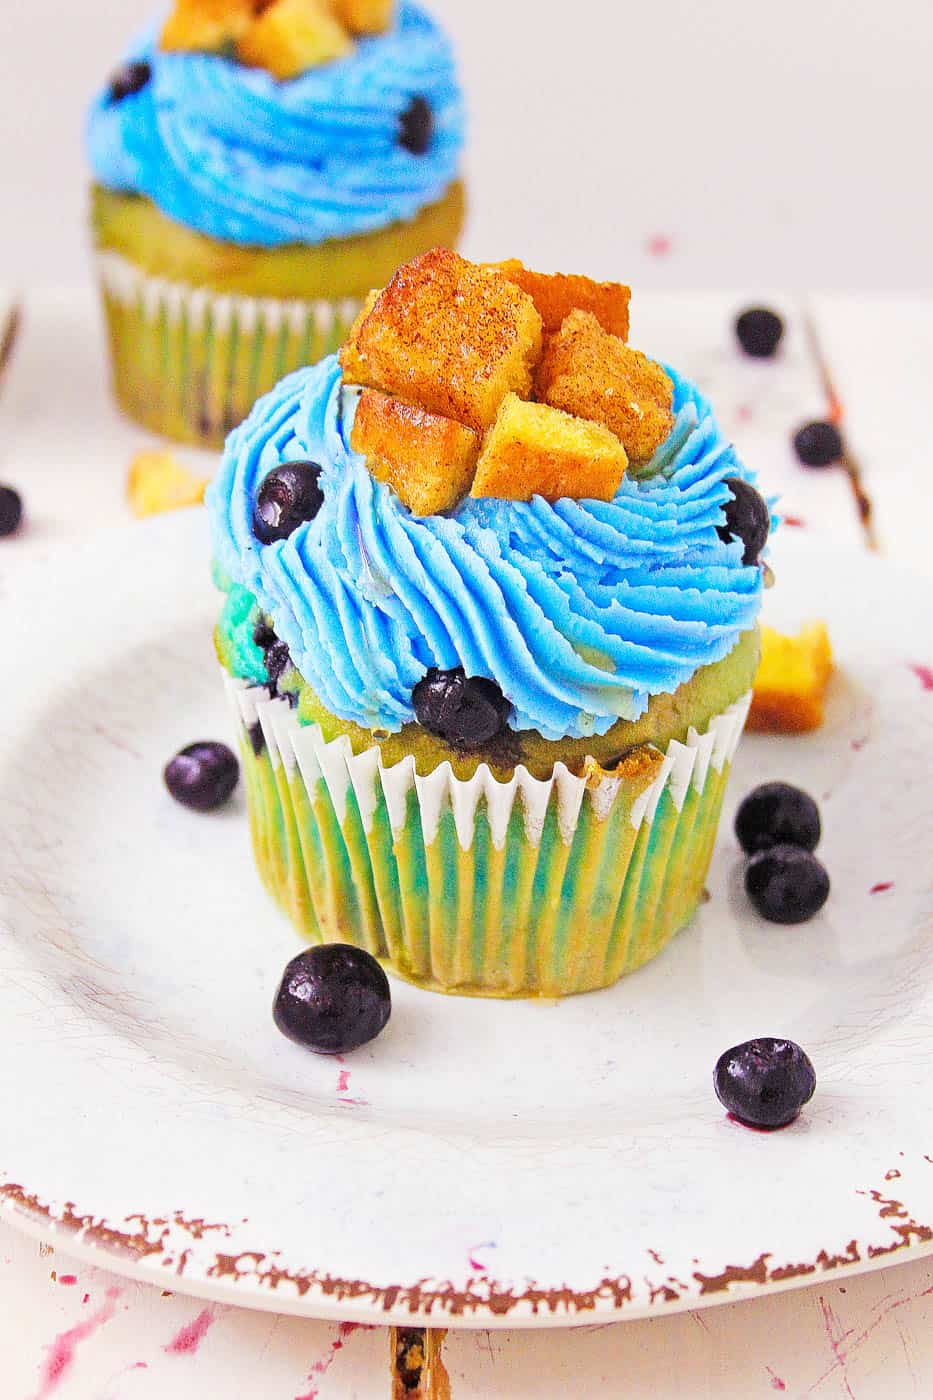 healthy Blueberry Lemonade Cupcakes With Lemon Cream Cheese Frosting on a white plate topped with french toast and fresh blueberries